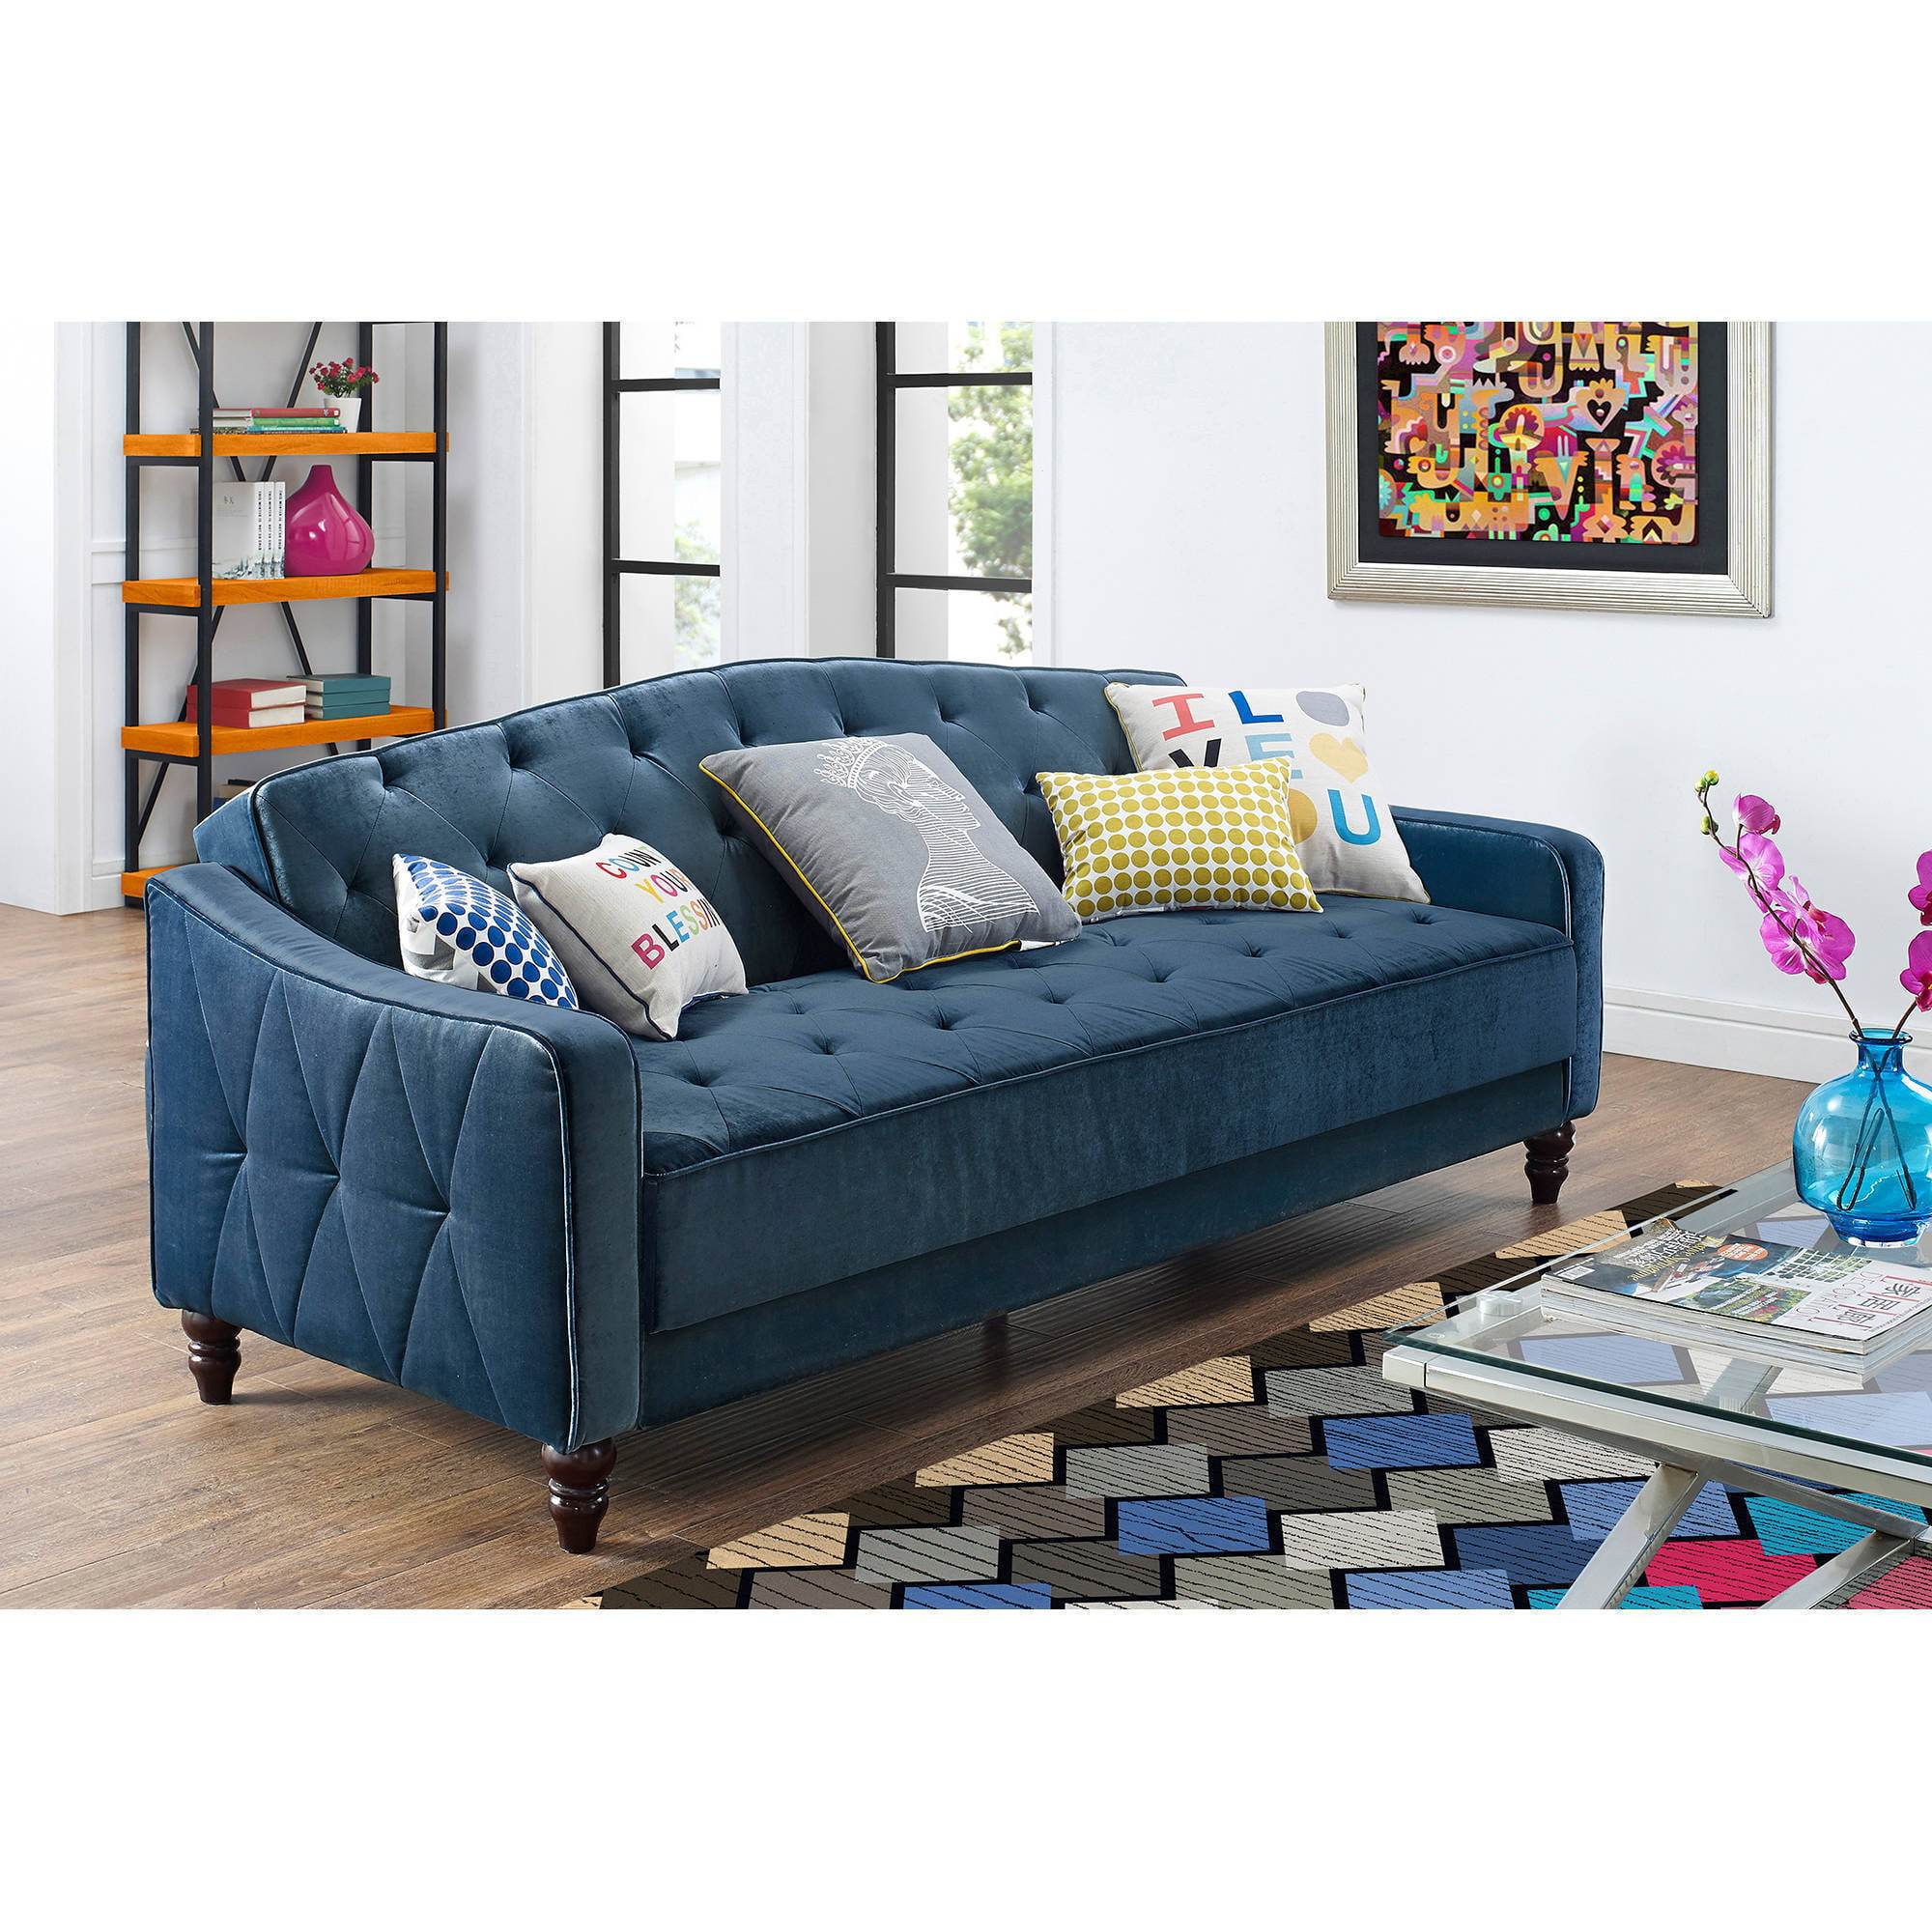 full on sofa marvelous elegant sleeper leather twin image kids concept walmart ashley sale